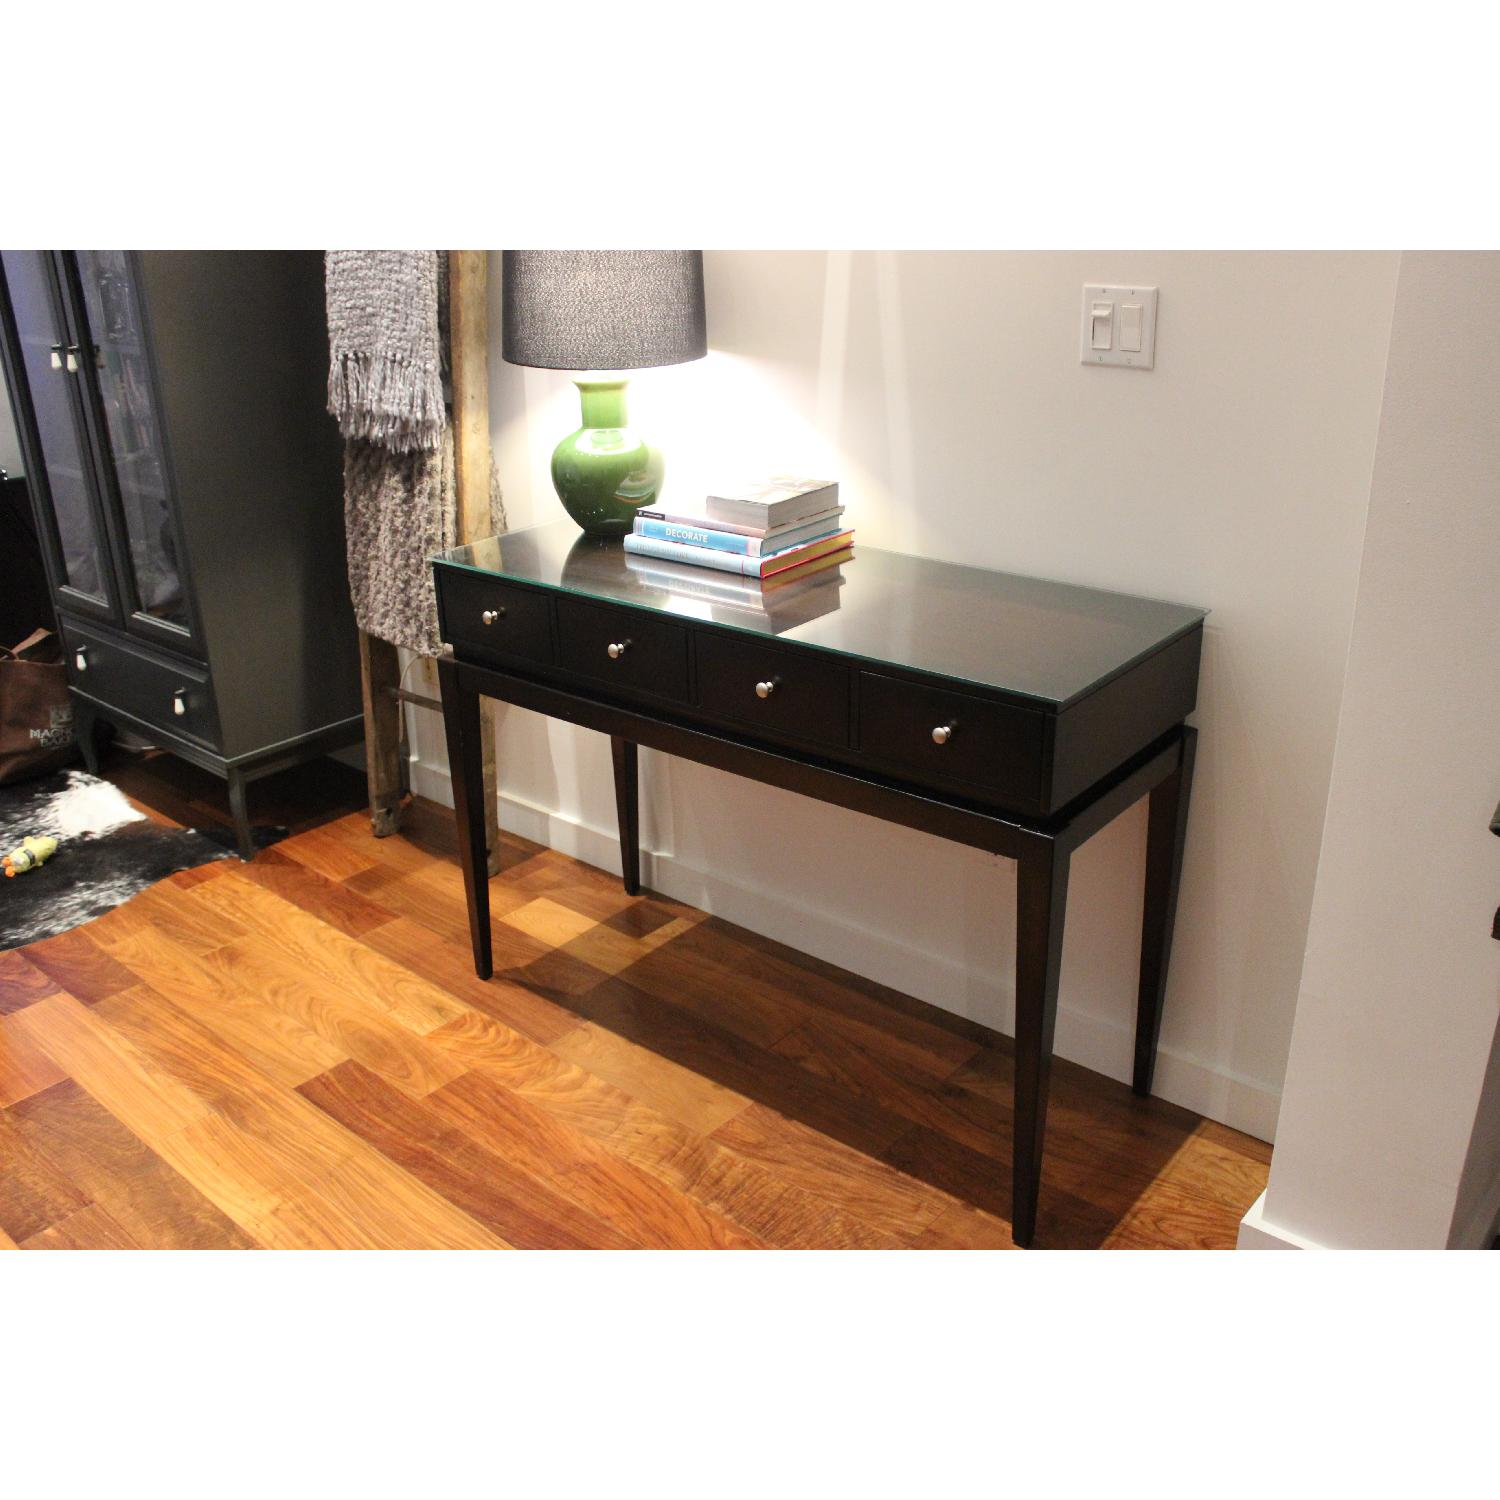 Used desks for sale in NYC - AptDeco